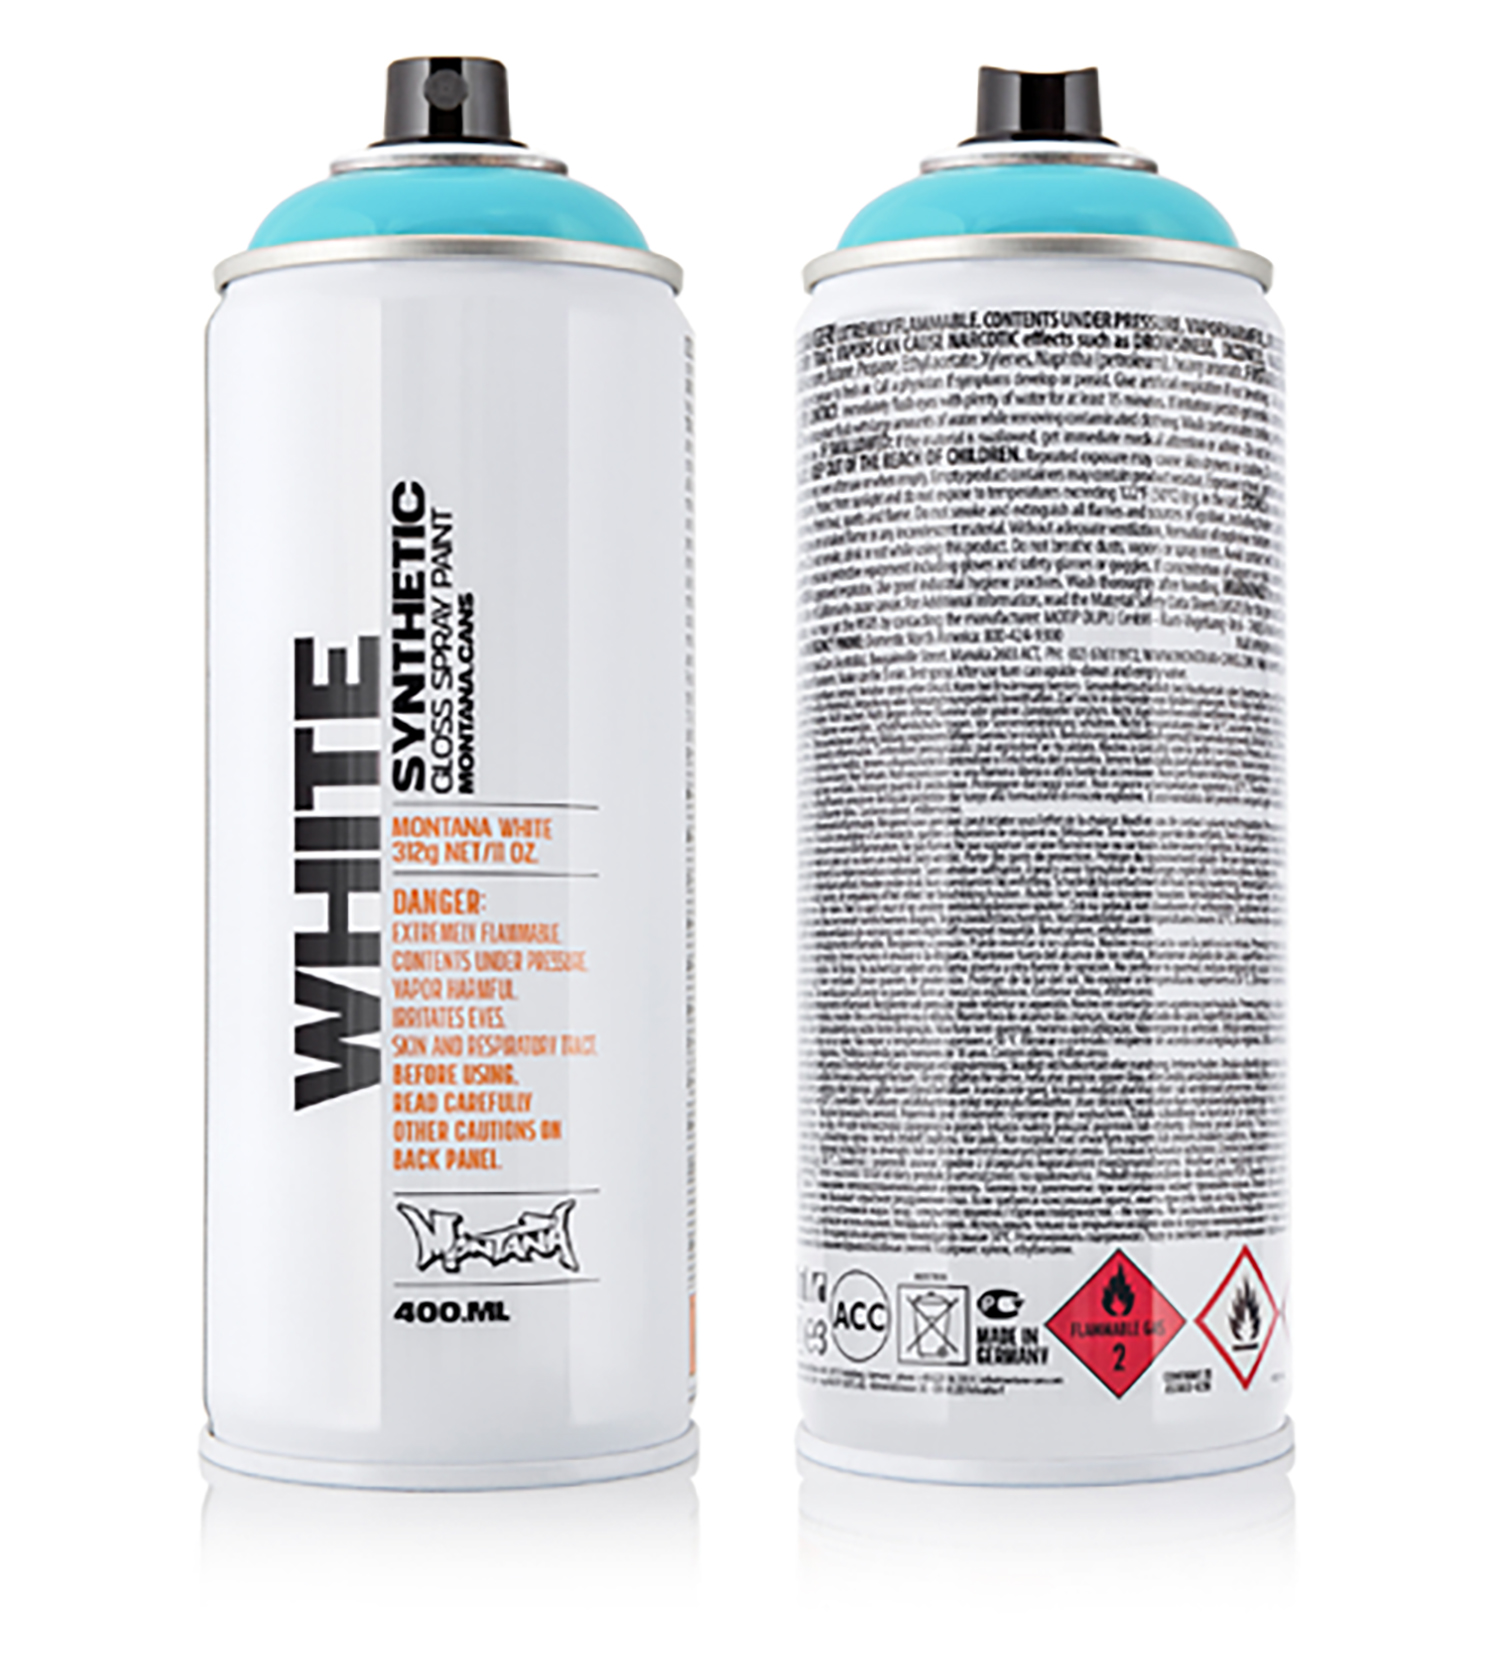 MONTANA-WHITE-SPRAY-400ML-5020